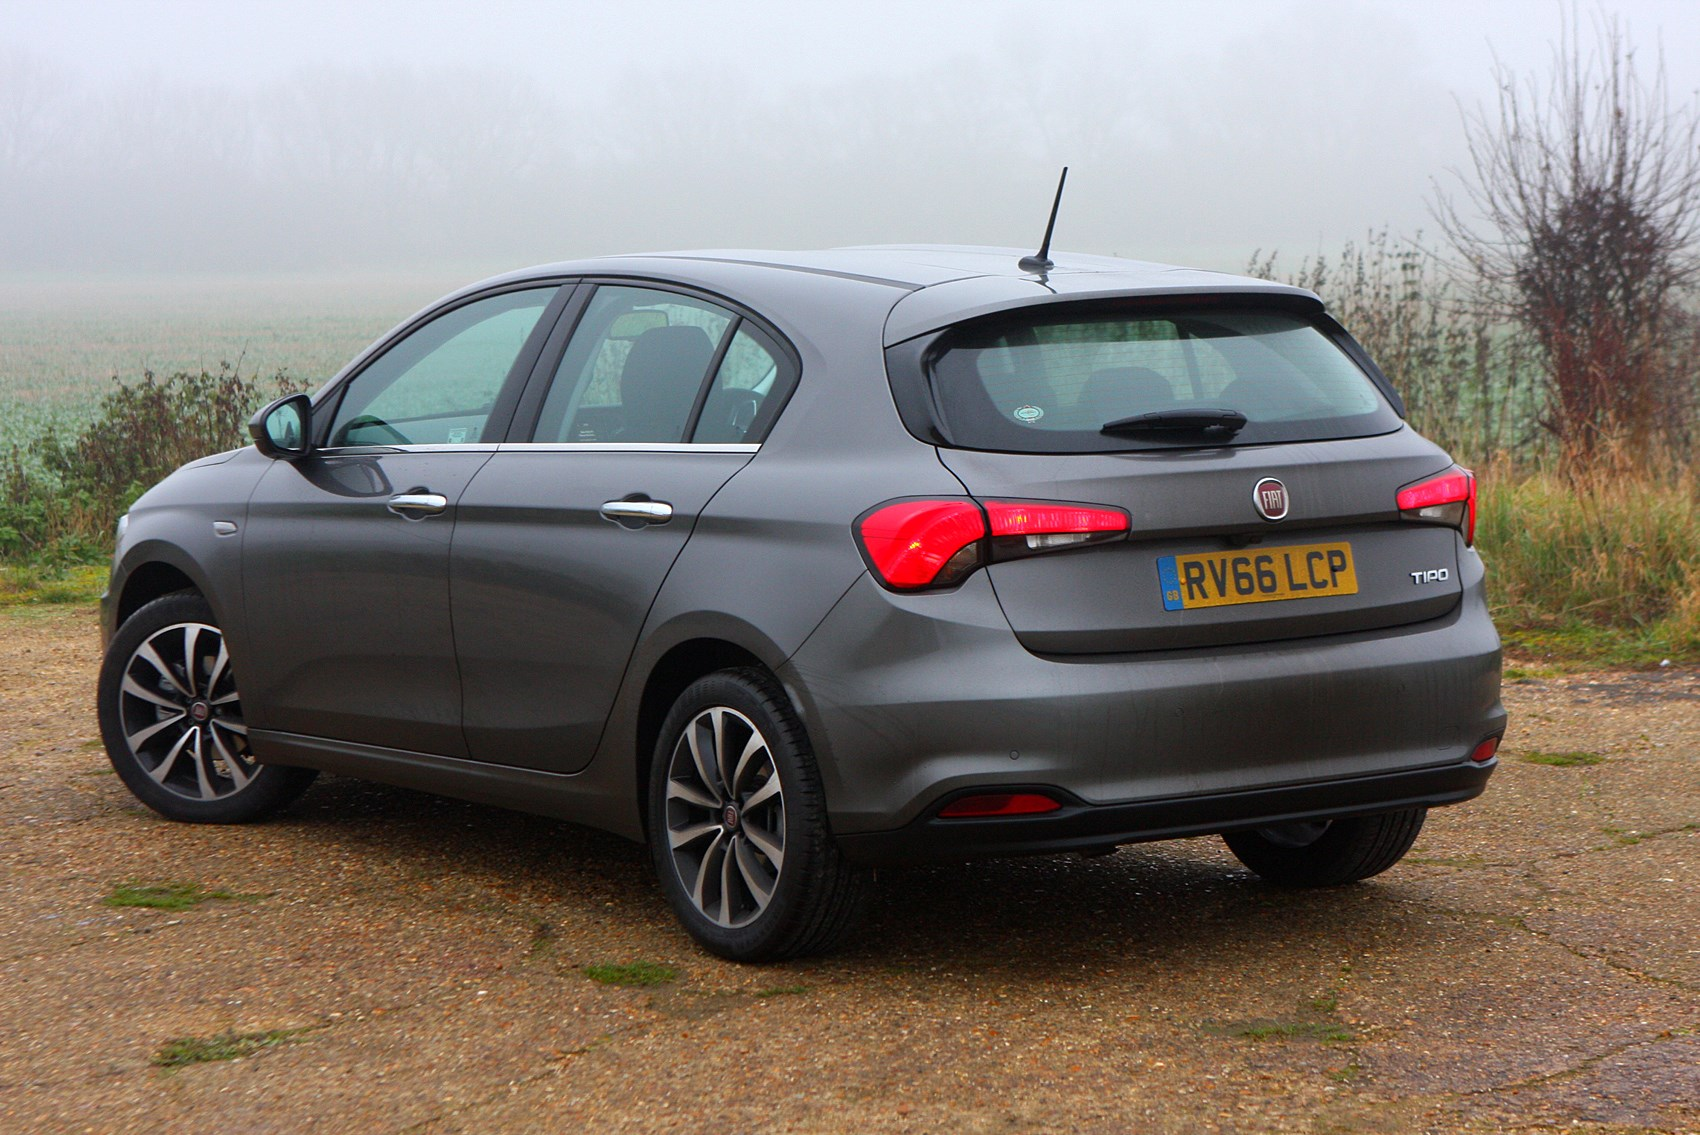 Fiat Tipo Hatchback Review  2016